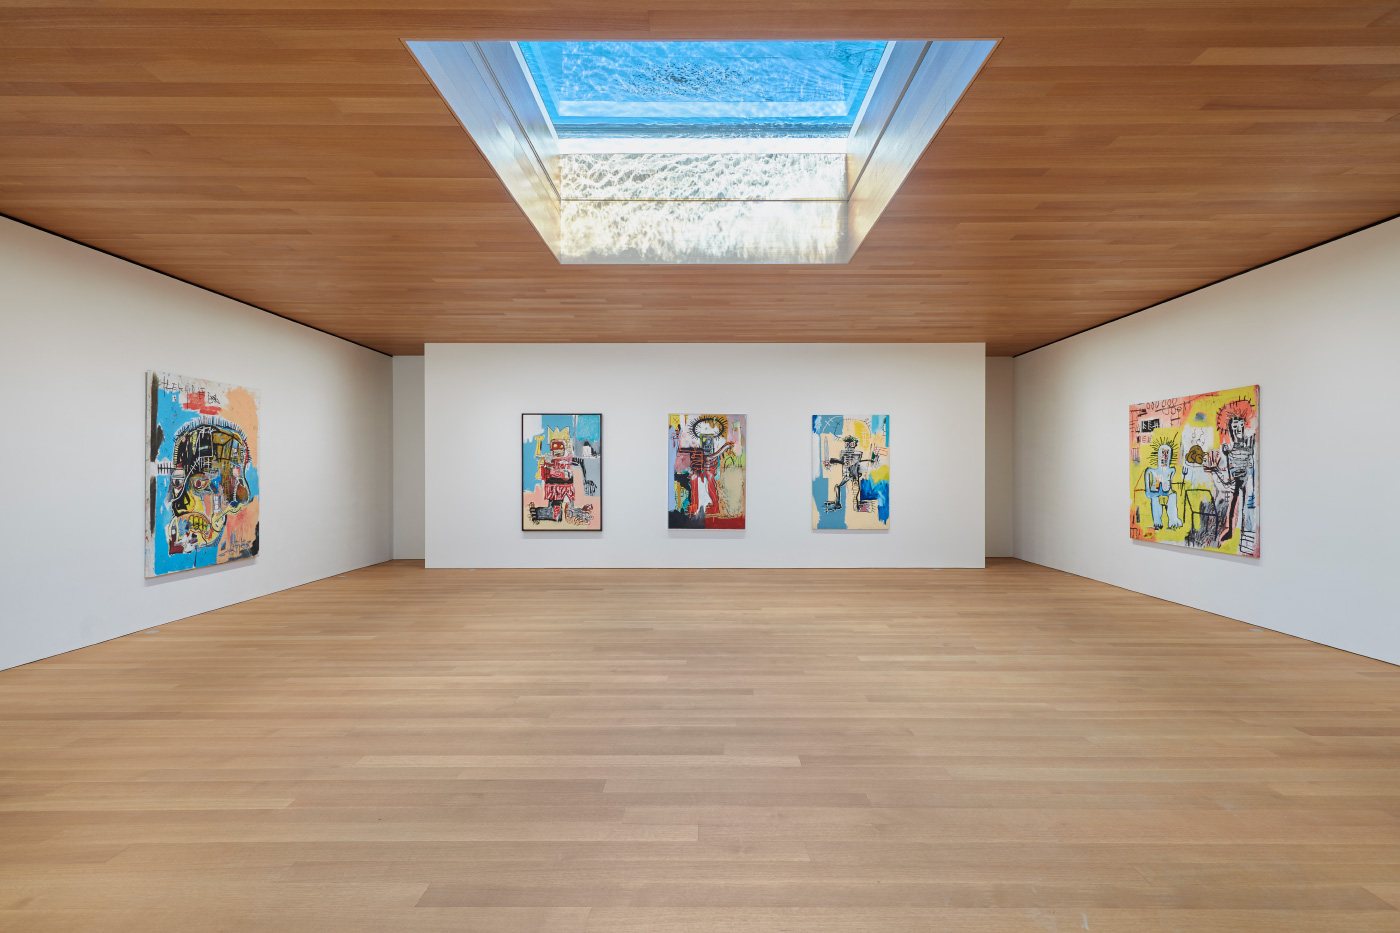 Interior photo of the Brant Foundation galleries, with an aquarium skylight distorting the light